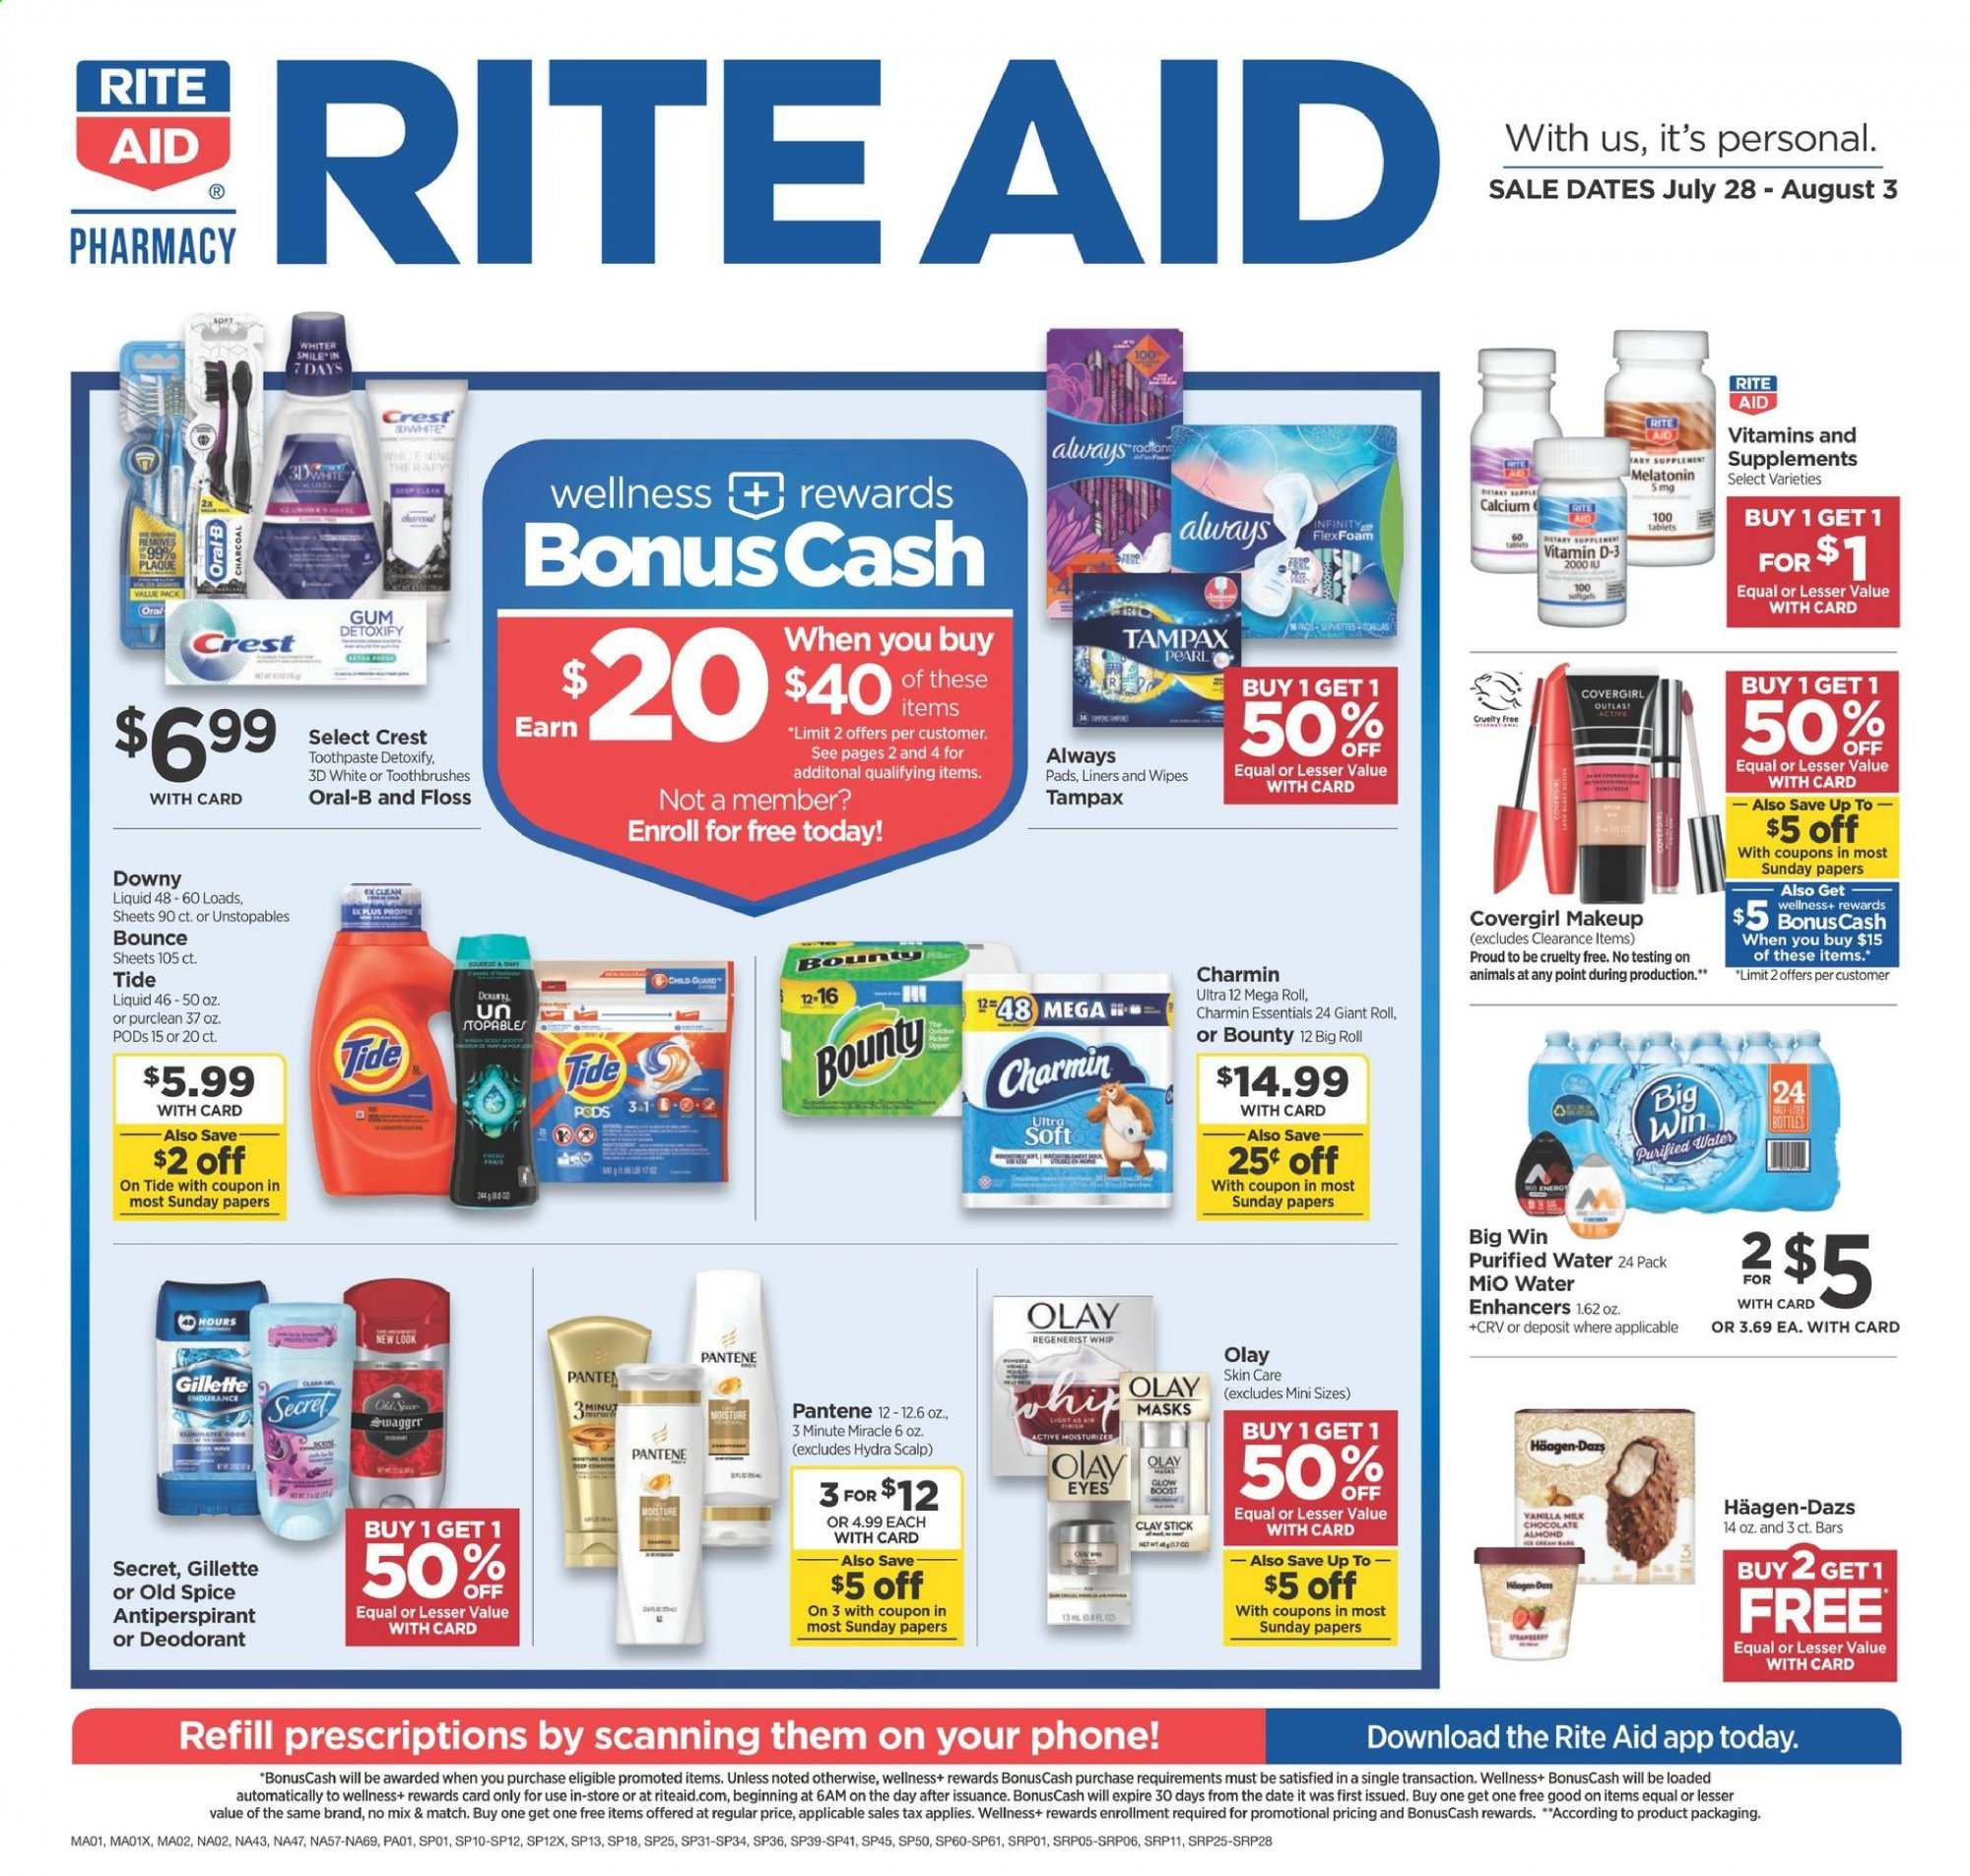 RITE AID Flyer - 07.28.2019 - 08.03.2019 - Sales products - always, bounce, calcium, crest, dates, deodorant, downy, gillette, makeup, melatonin, milk chocolate, moisture, secret, stick, tampax, tide, unstopables, wipes, pantene, olay, old spice, pads, oral-b, chocolate, toothpaste, gum, bounty, gear, refill, liquid, tablets, smile, purified water. Page 1.